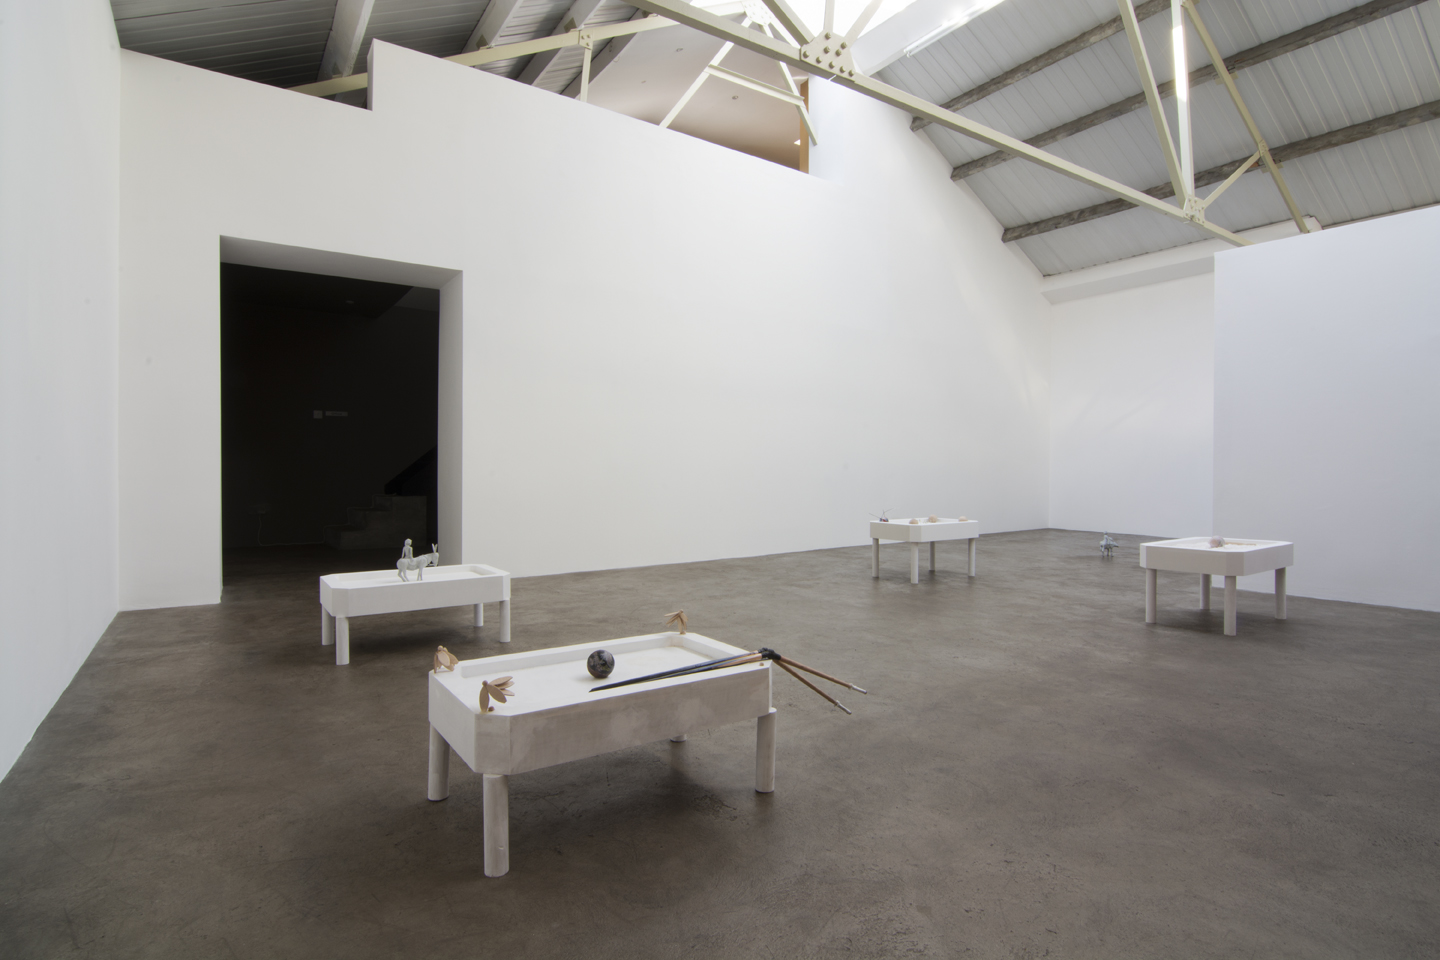 Sam Anderson, Talley's Folly, mother's tankstation, 8 April–23 May 2015